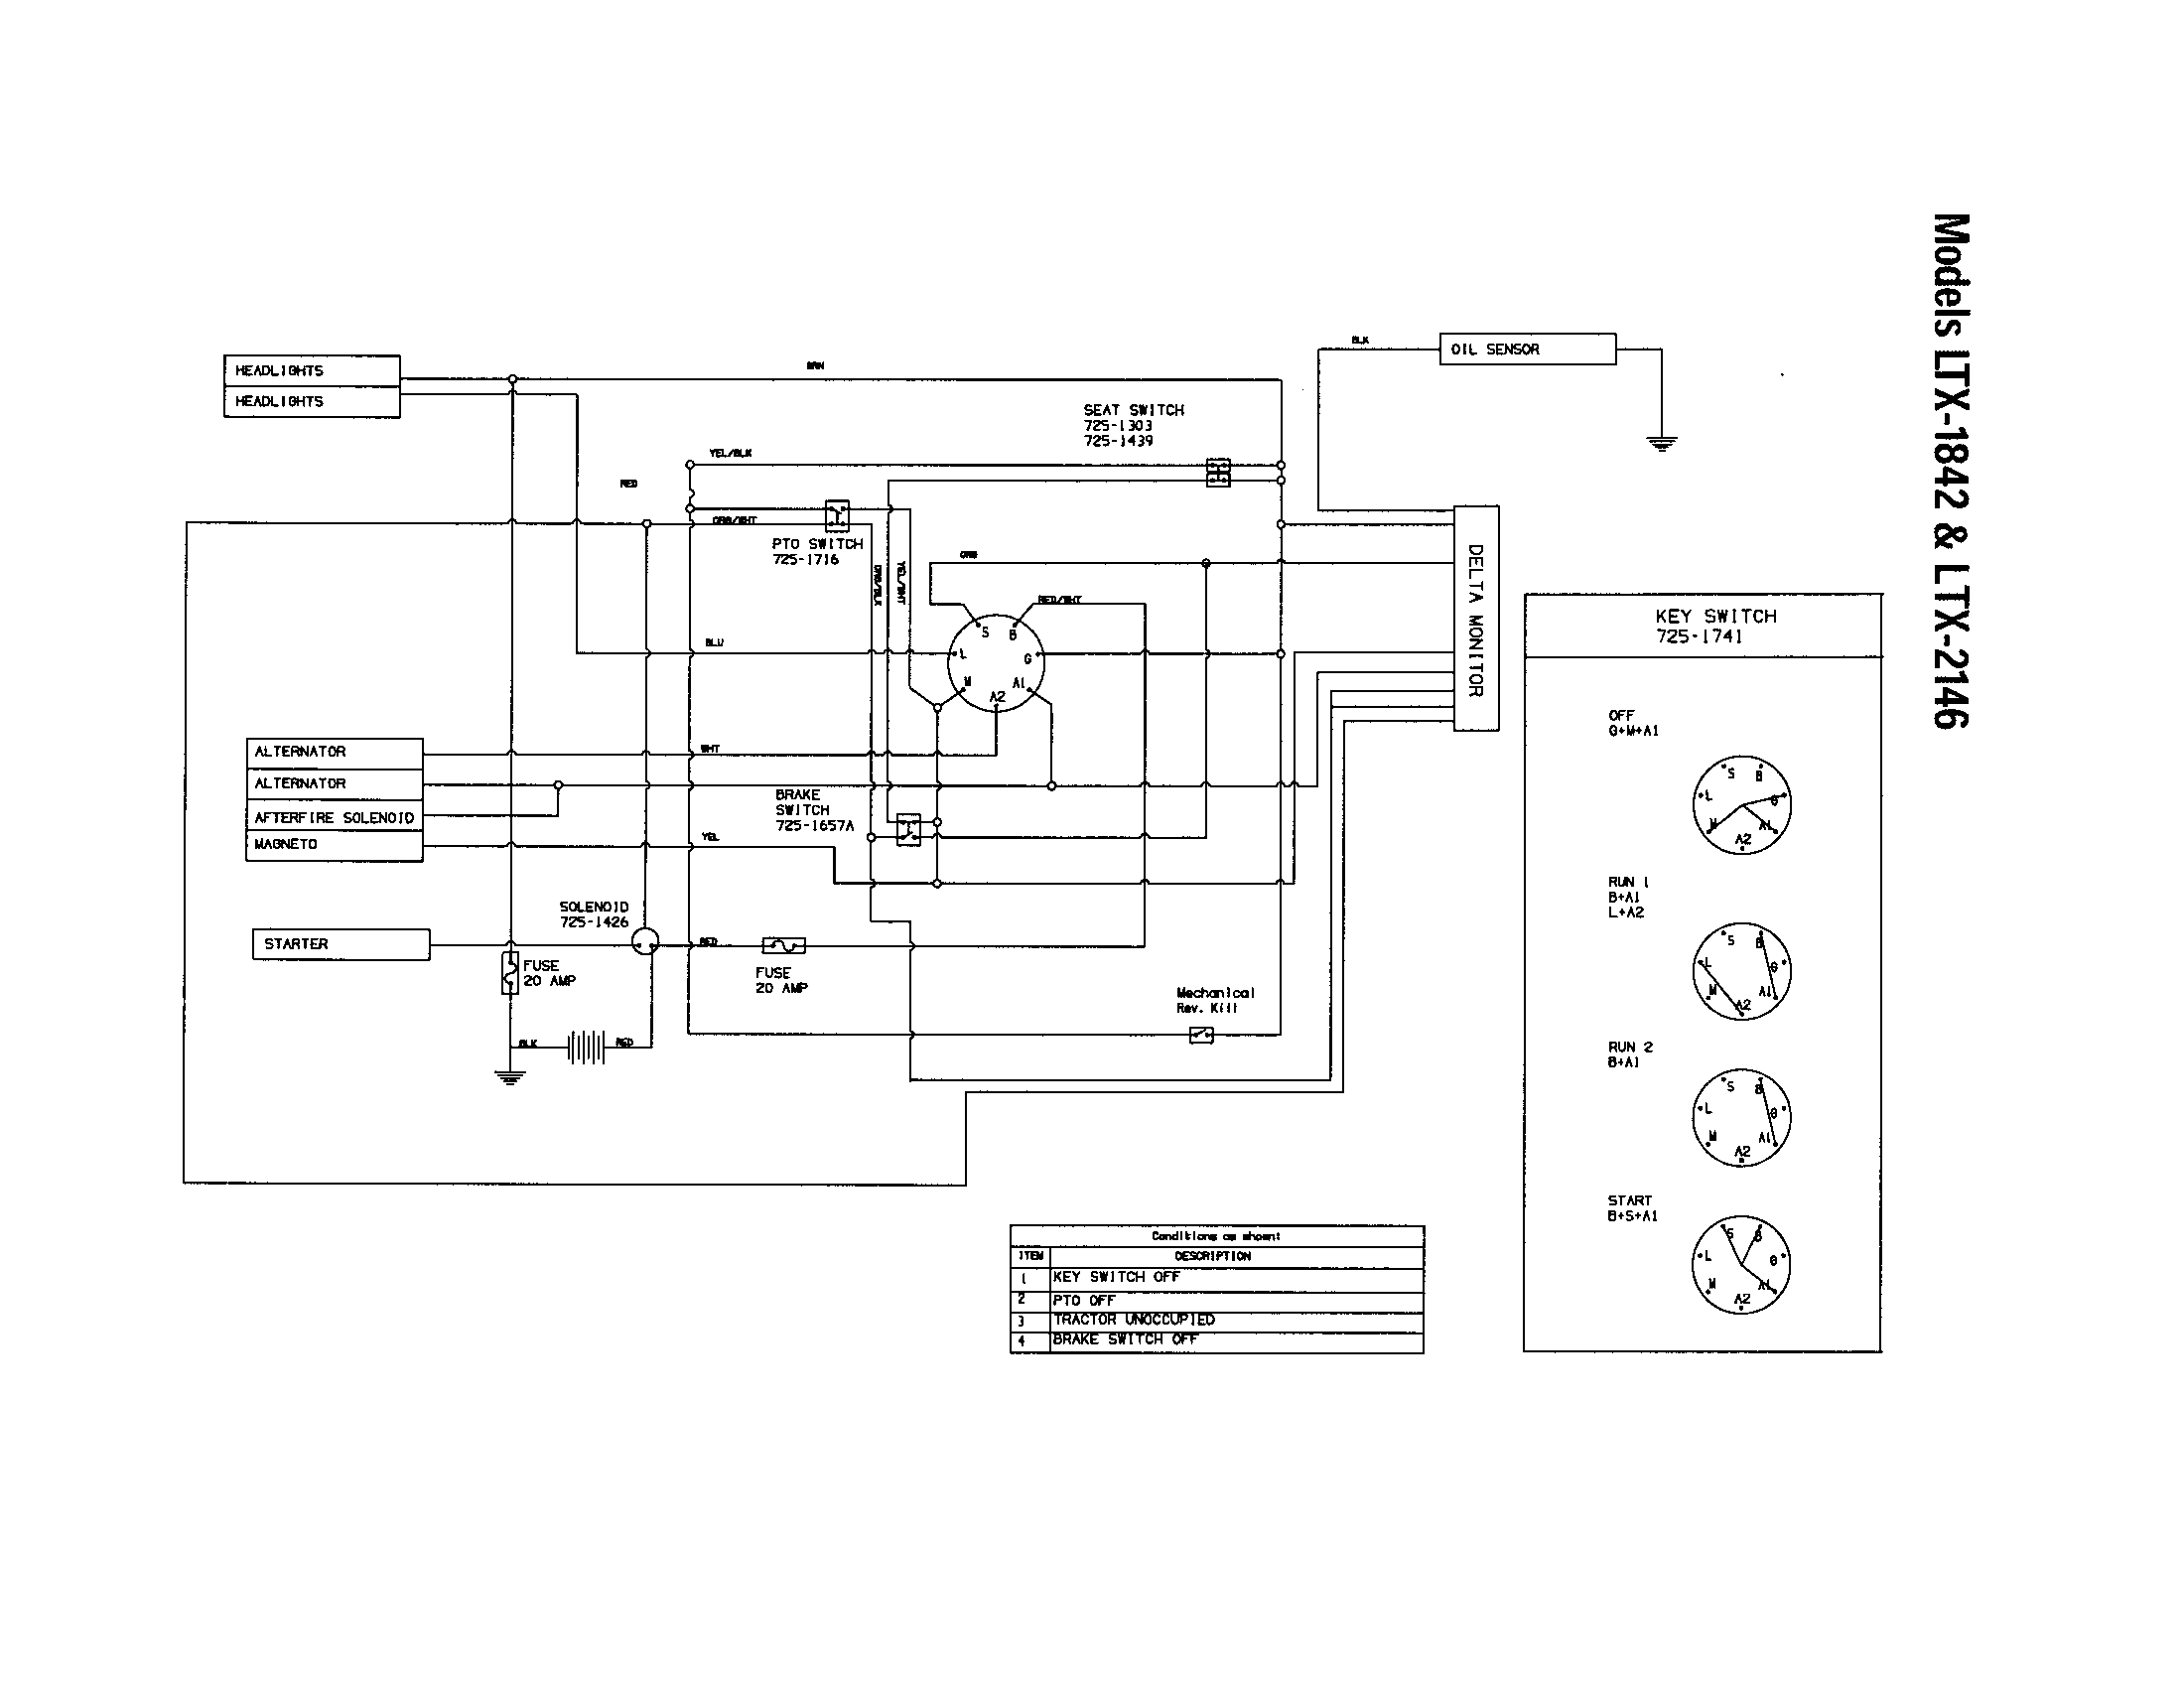 5f6fdf170ac50150de0653e8e97fb173 riding mower wiring diagram ltx 1040 cub riding mower wiring Briggs Stratton Engine Diagram at gsmx.co